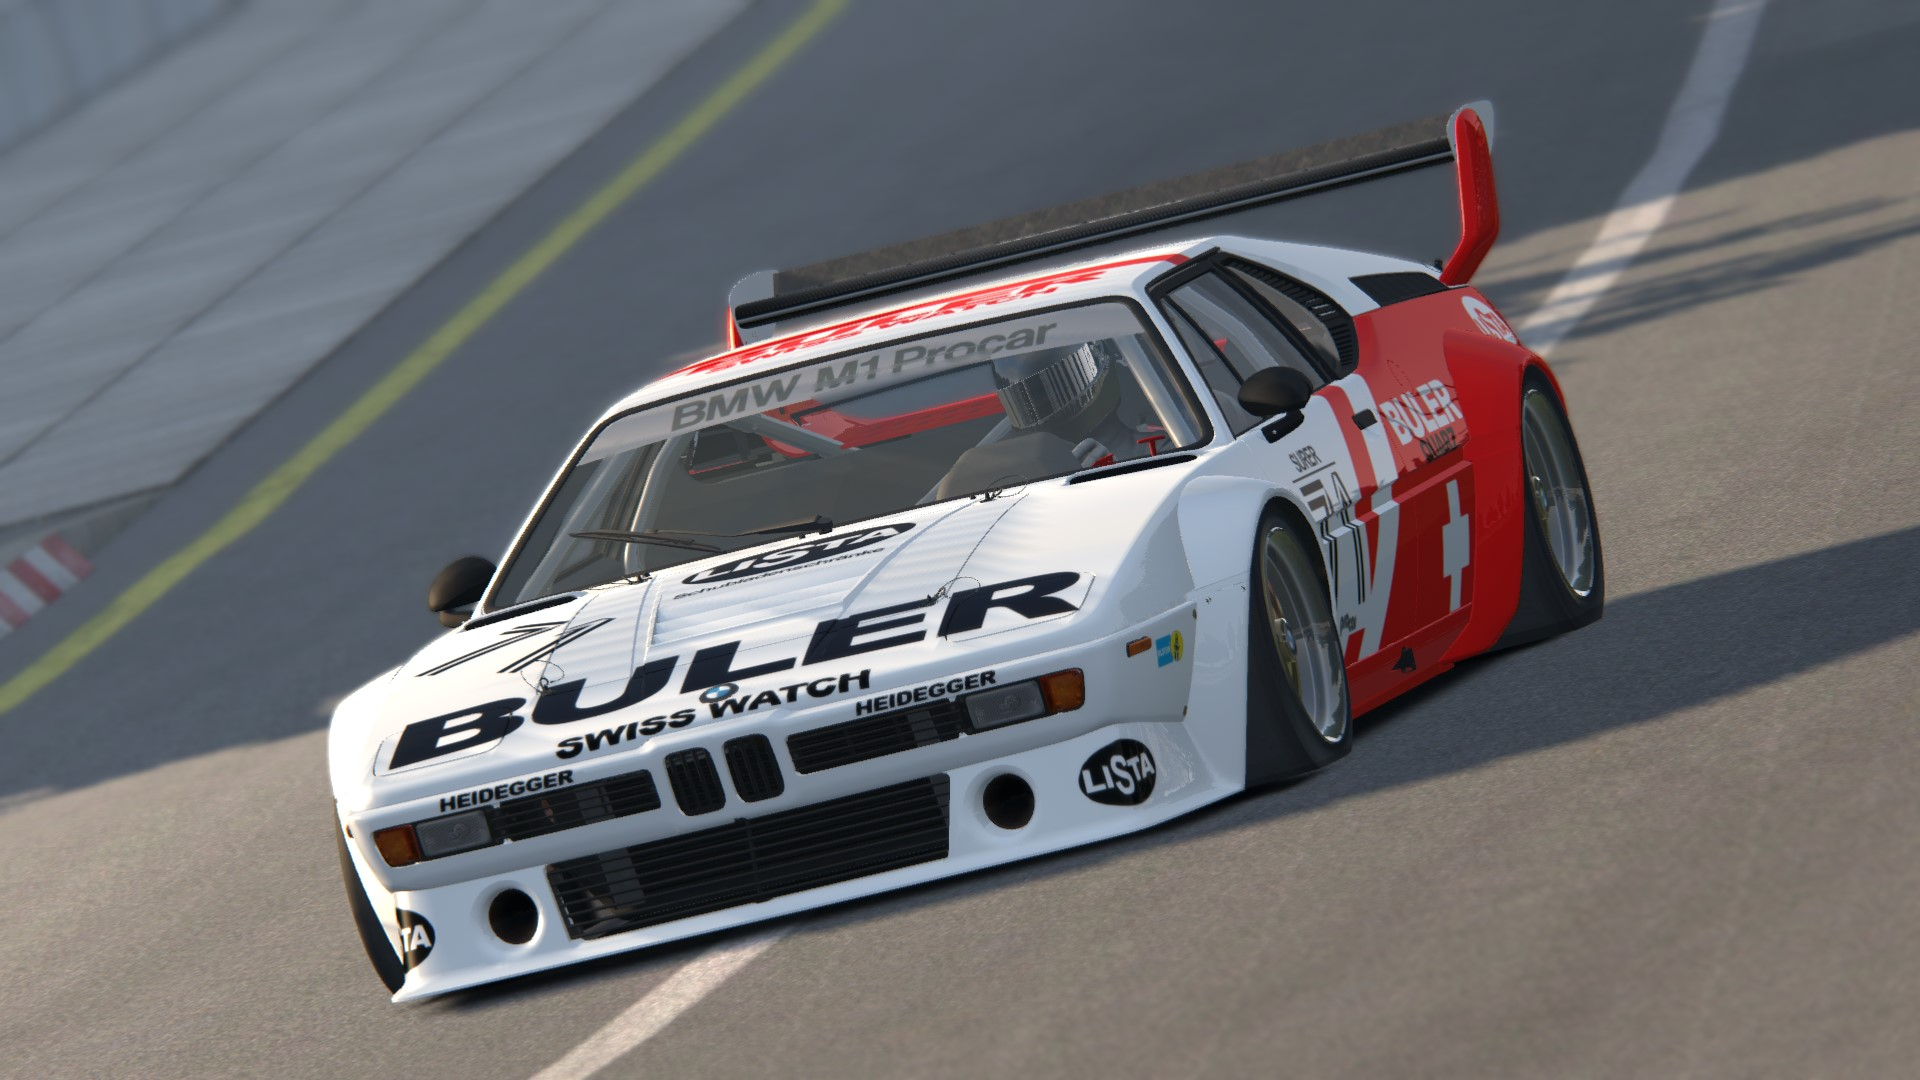 bmw m1 procar serie 1979 buler swiss watch racedepartment. Black Bedroom Furniture Sets. Home Design Ideas